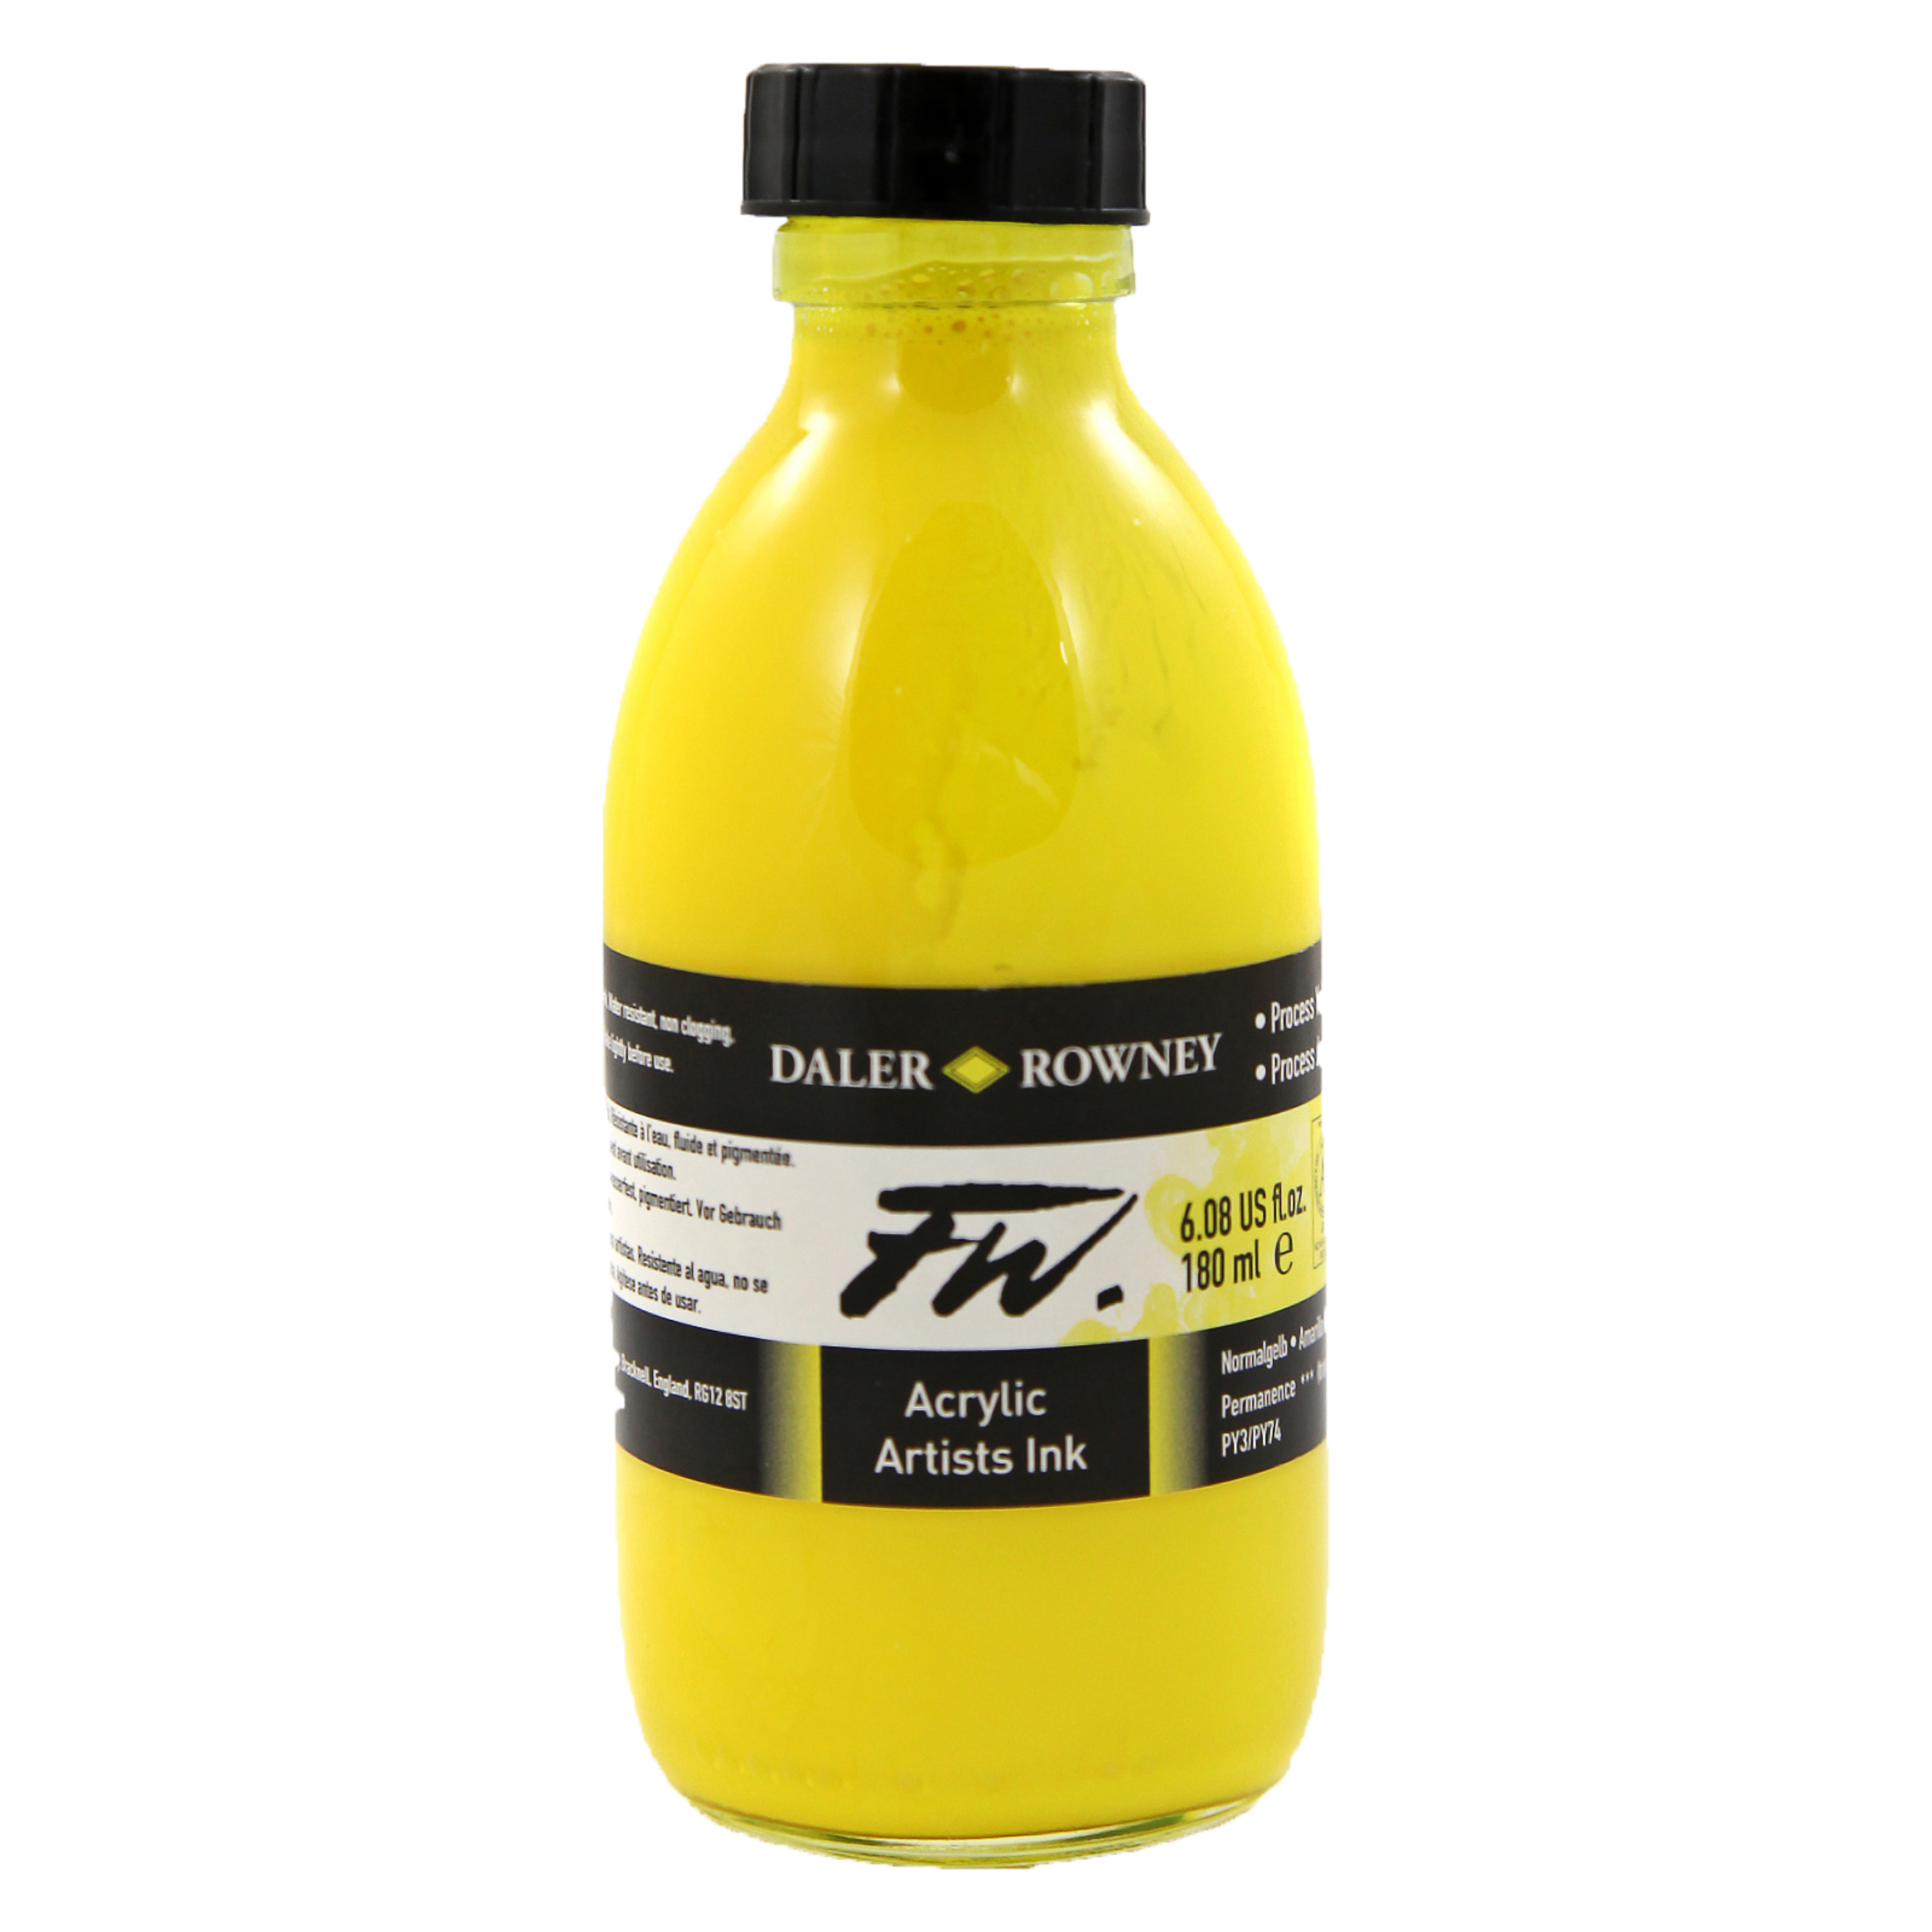 Daler-Rowney FW Acrylic Artists Ink, 6 oz. Bottle, Process Yellow